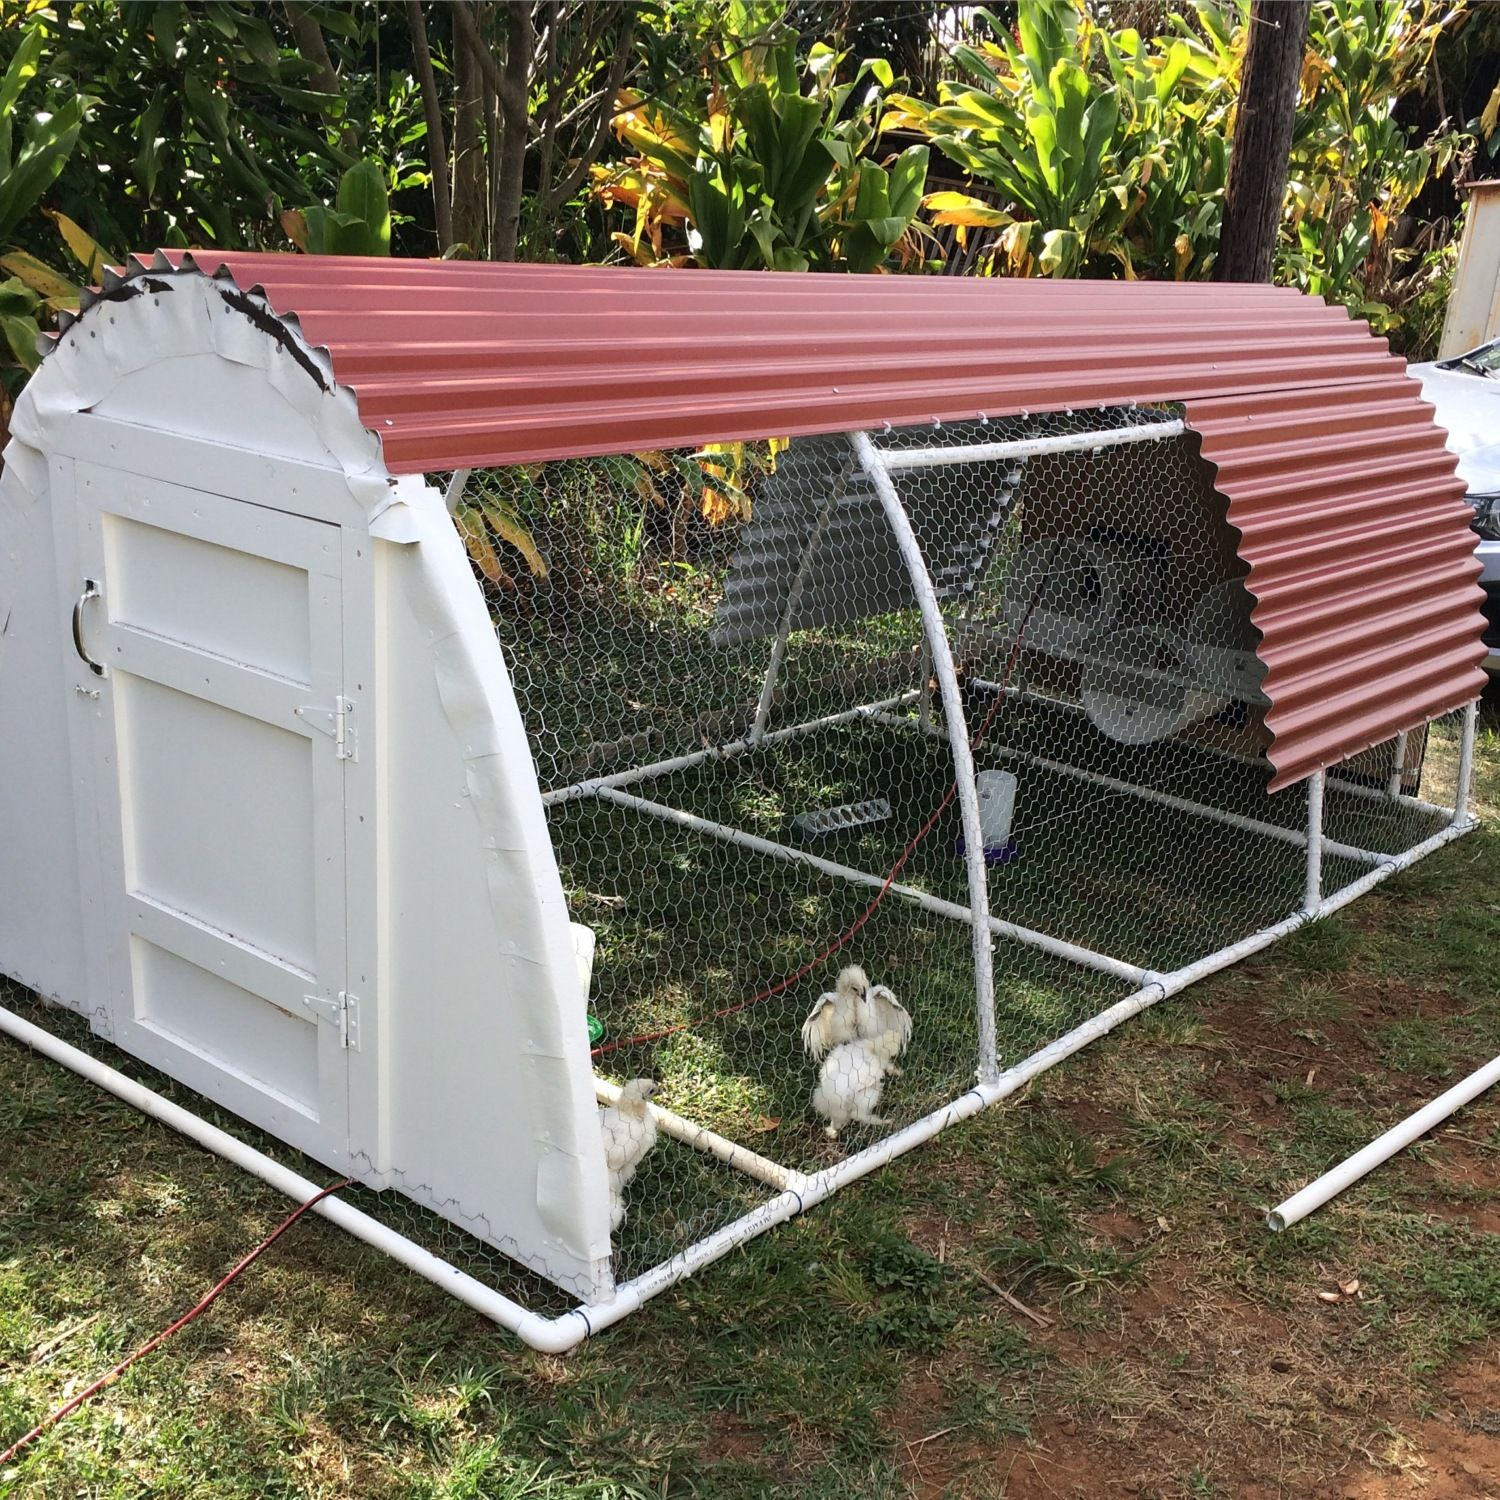 Diy pvc coop for Pvc chicken tractor plans